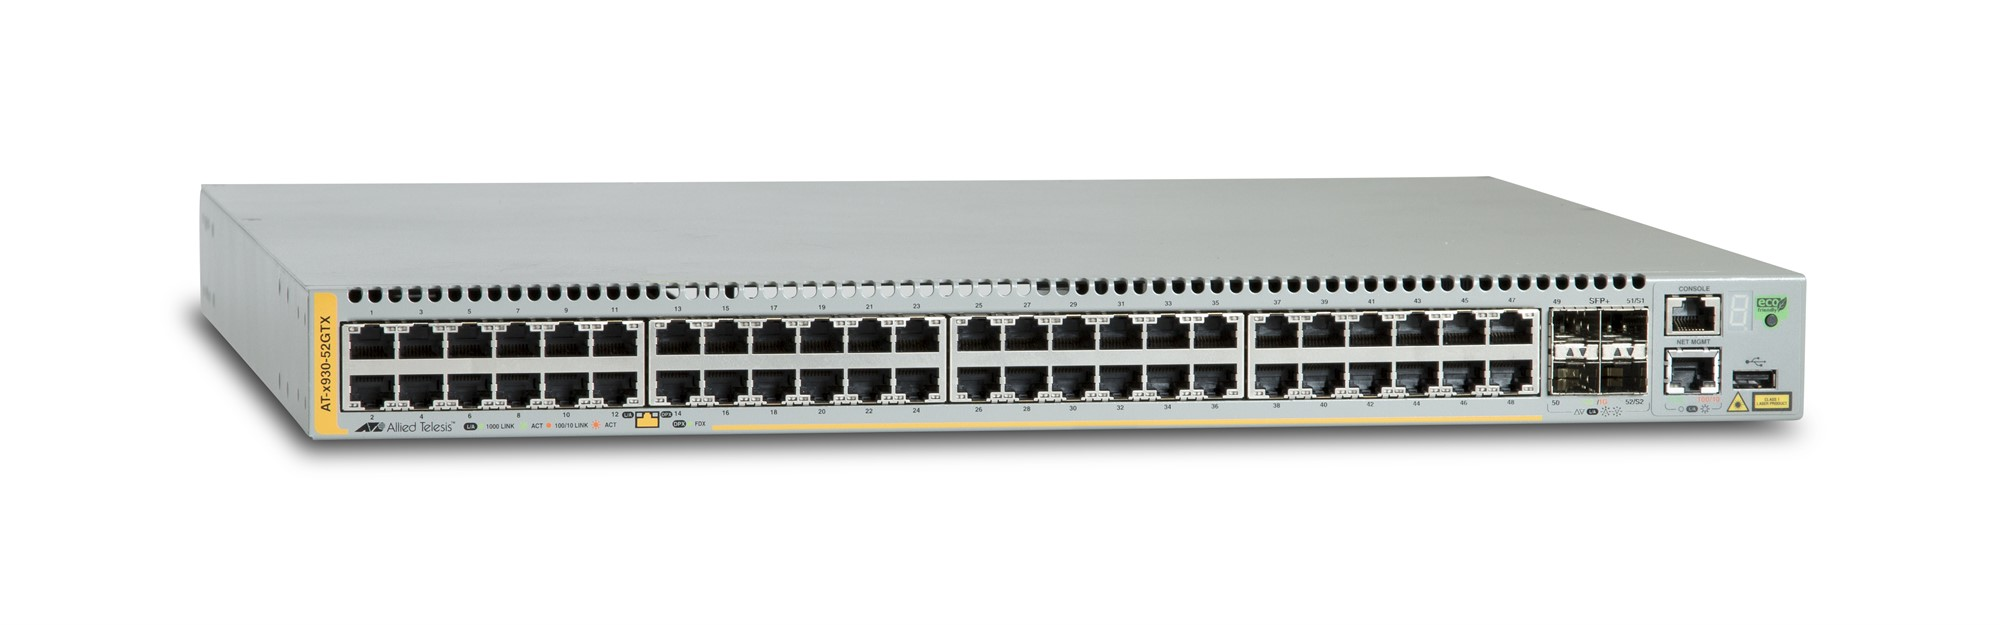 ALLIED TELESIS AT-X930-52GTX MANAGED NETWORK SWITCH L3 GIGABIT ETHERNET (10 - 100 1000) GREY